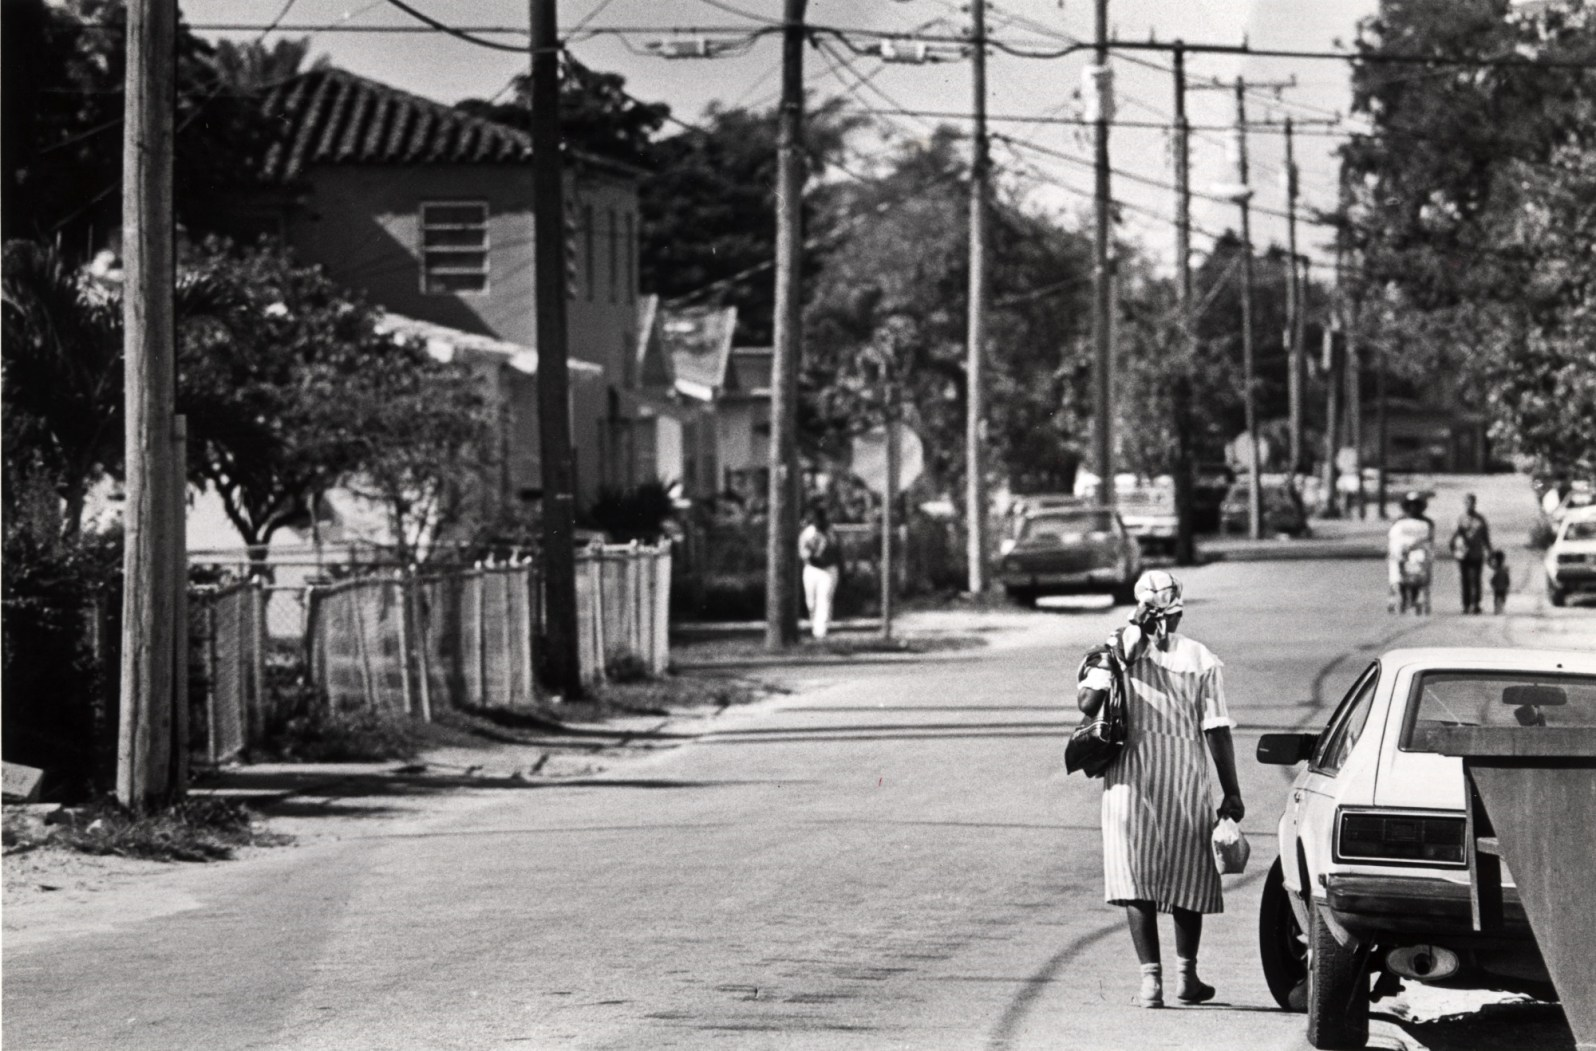 Street scene in Little Haiti from Dec. 3, 1987. (Courtesy of Miami News Collection/HistoryMiami Museum)